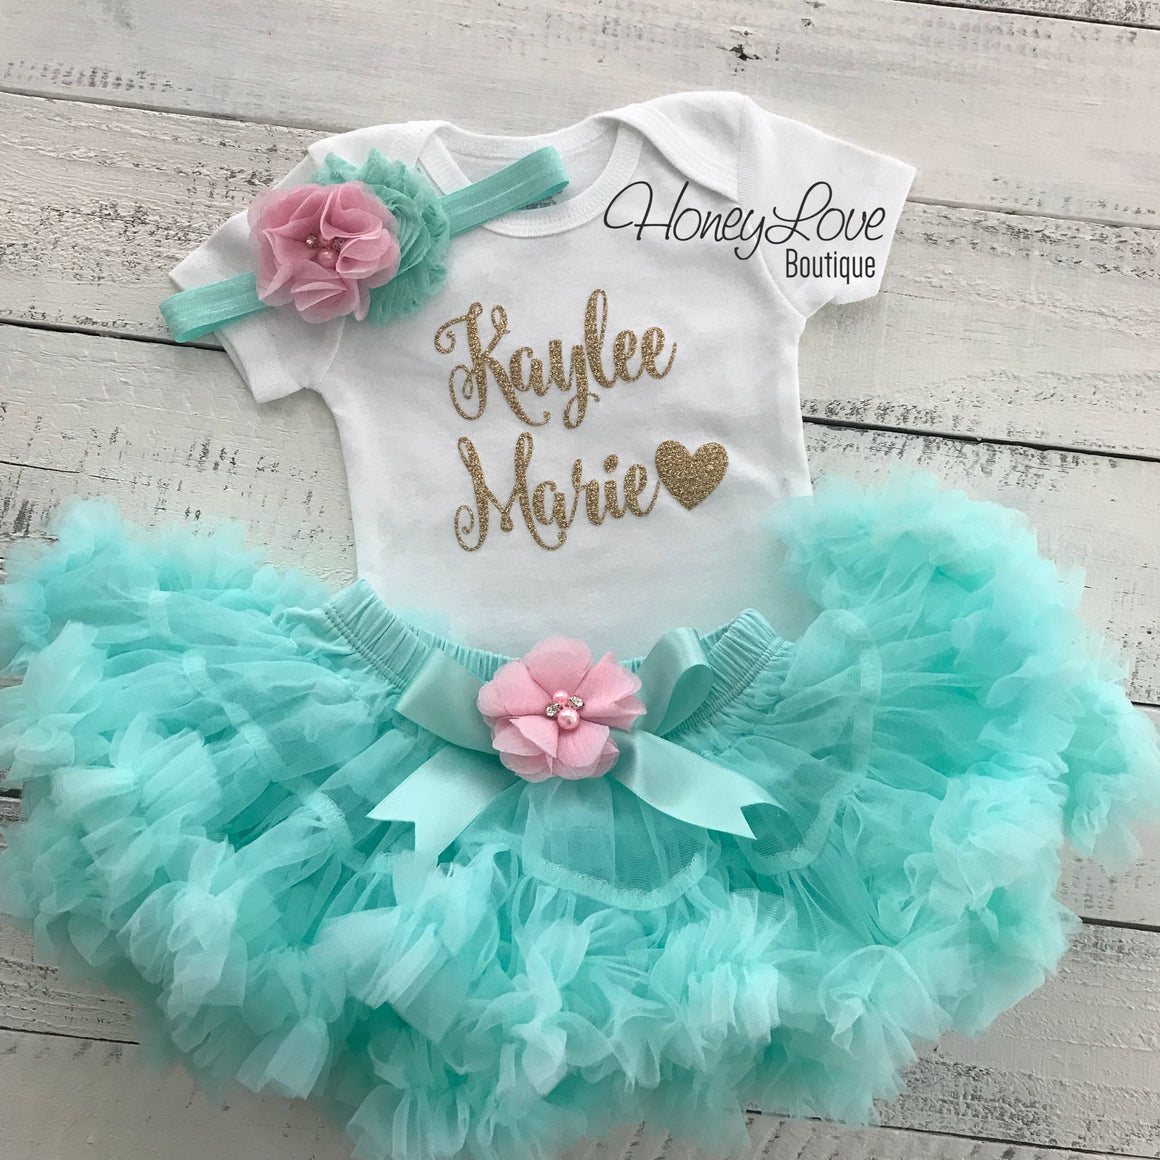 PERSONALIZED Name Outfit - Mint/Aqua and Gold Glitter - Light Pink flower embellished pettiskirt - HoneyLoveBoutique